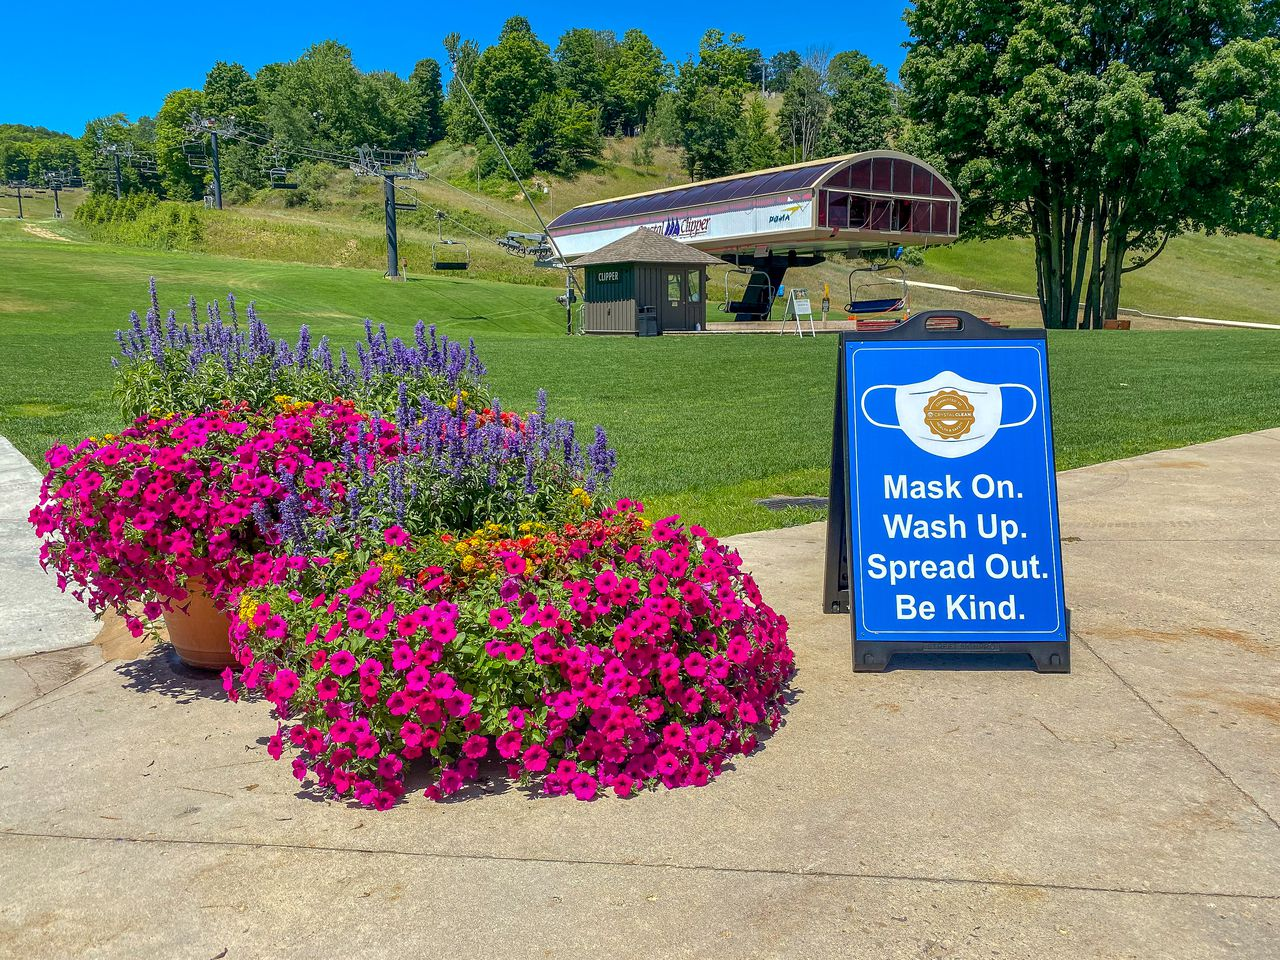 ski lift in the summer with sign that says mask on. wash up. spread out. be kind.